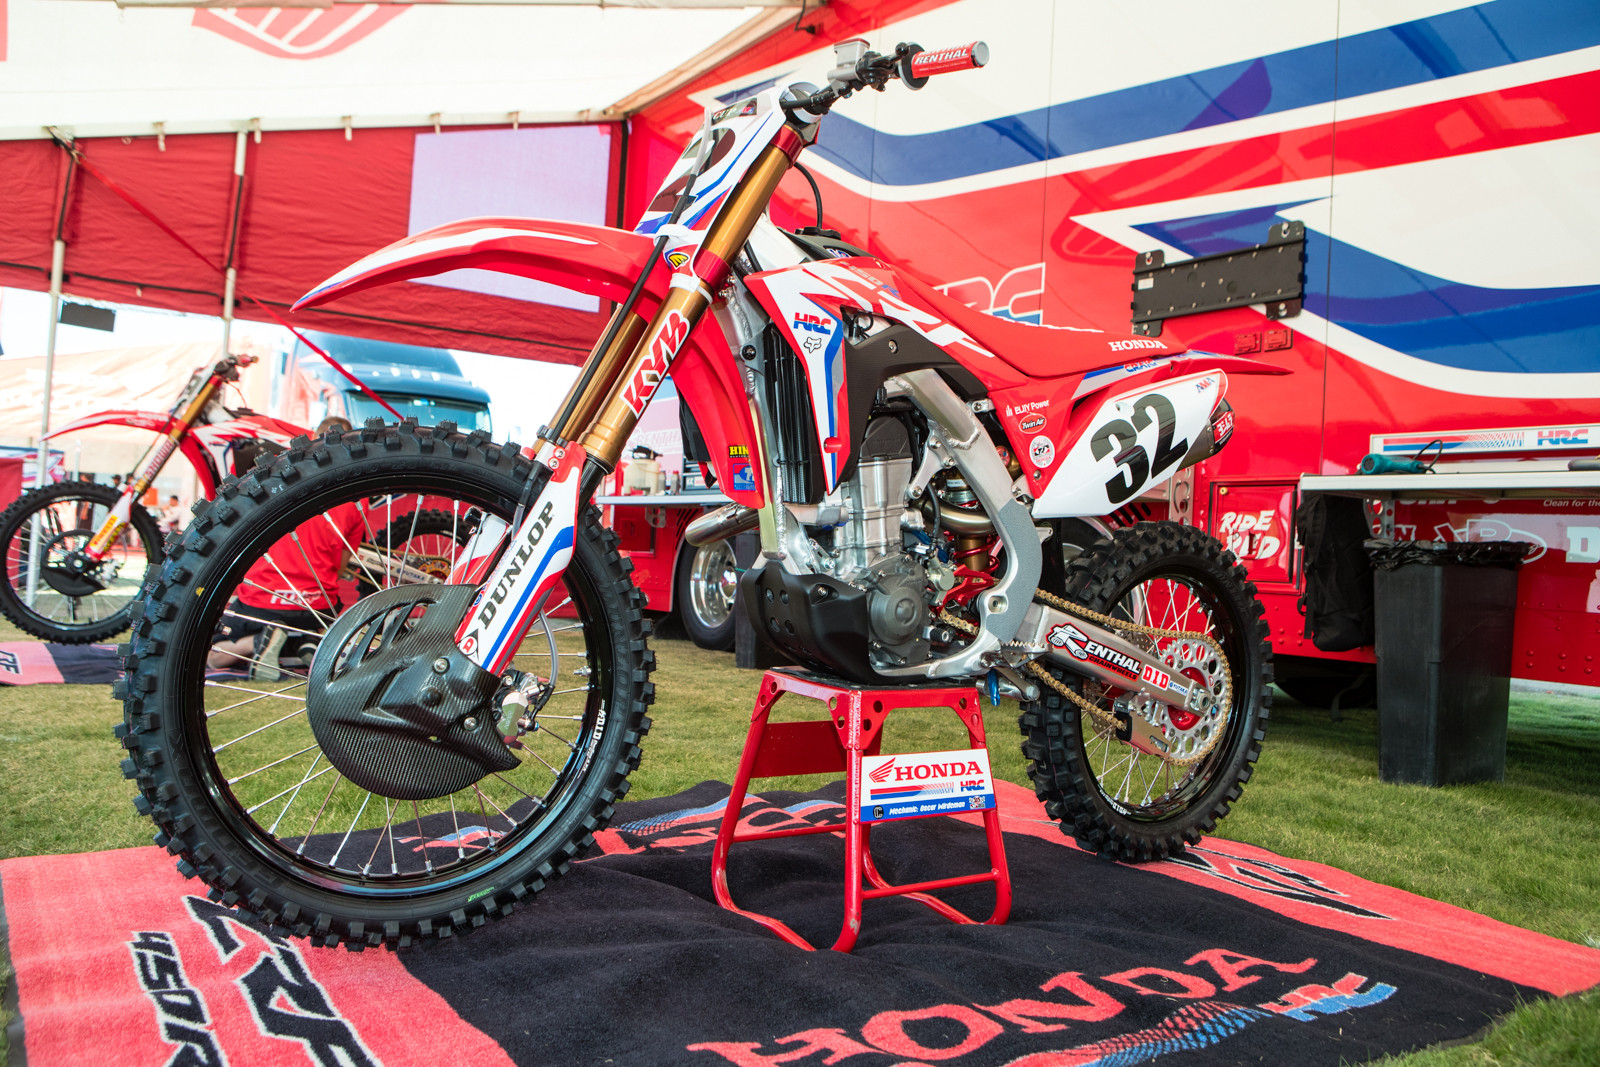 With Cole Seely out for MEC due to hand surgery, Christian Craig was again called up for duty...albeit with his new number for 2018 as the #32. Come outdoors of '18, we wouldn't be surprised to see Craig on a 450 again.